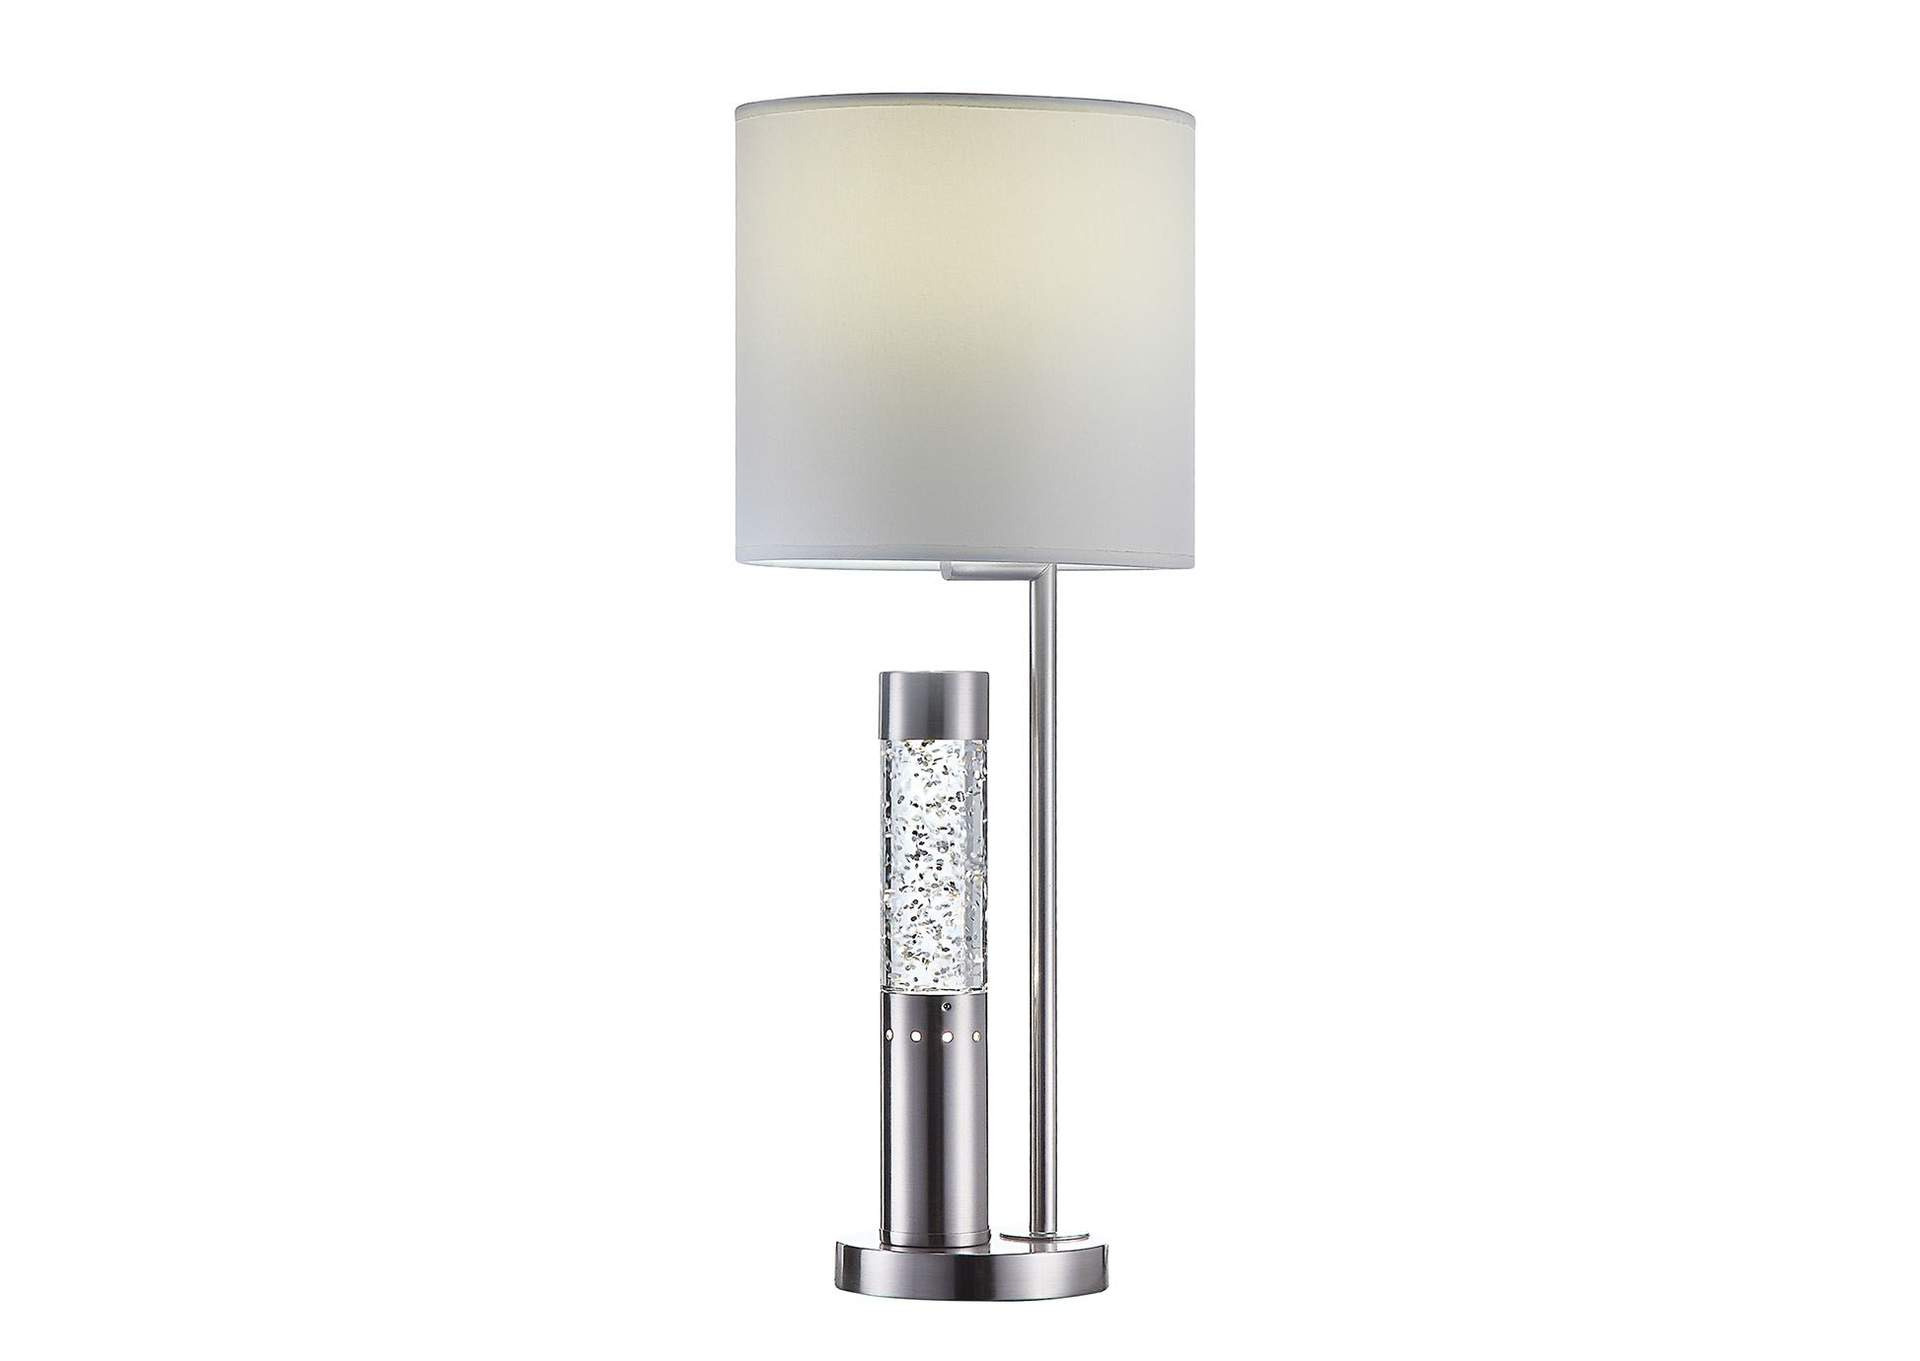 Claus Brushed Nickel Table Lamp,Acme